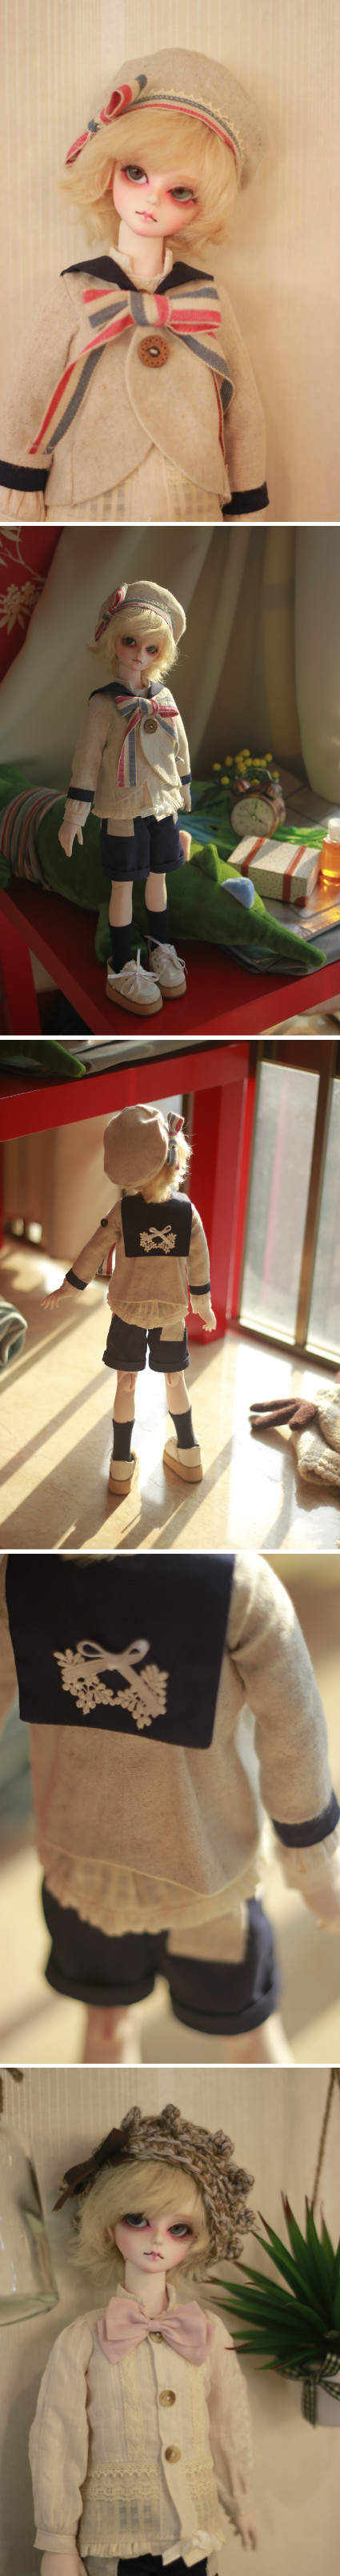 Sailor suit for 1/4 bjd by ASingleGiraffe